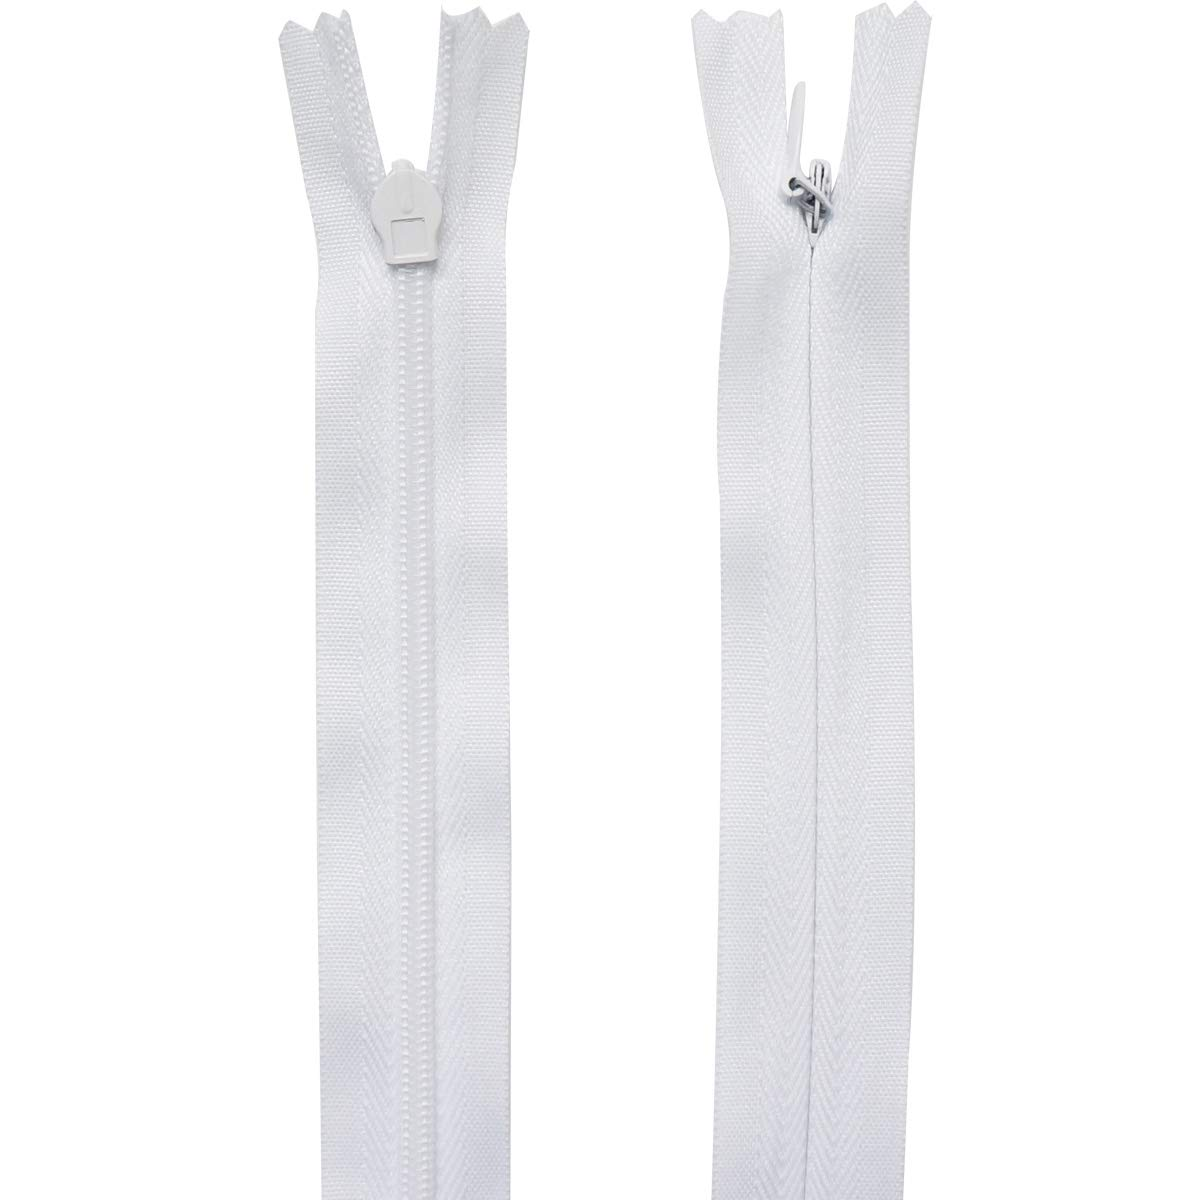 Misscrafts 25pcs Nylon Invisible Zippers 14 Inch White for DIY Sewing Crafts Bag Dresses Skirts Pillows